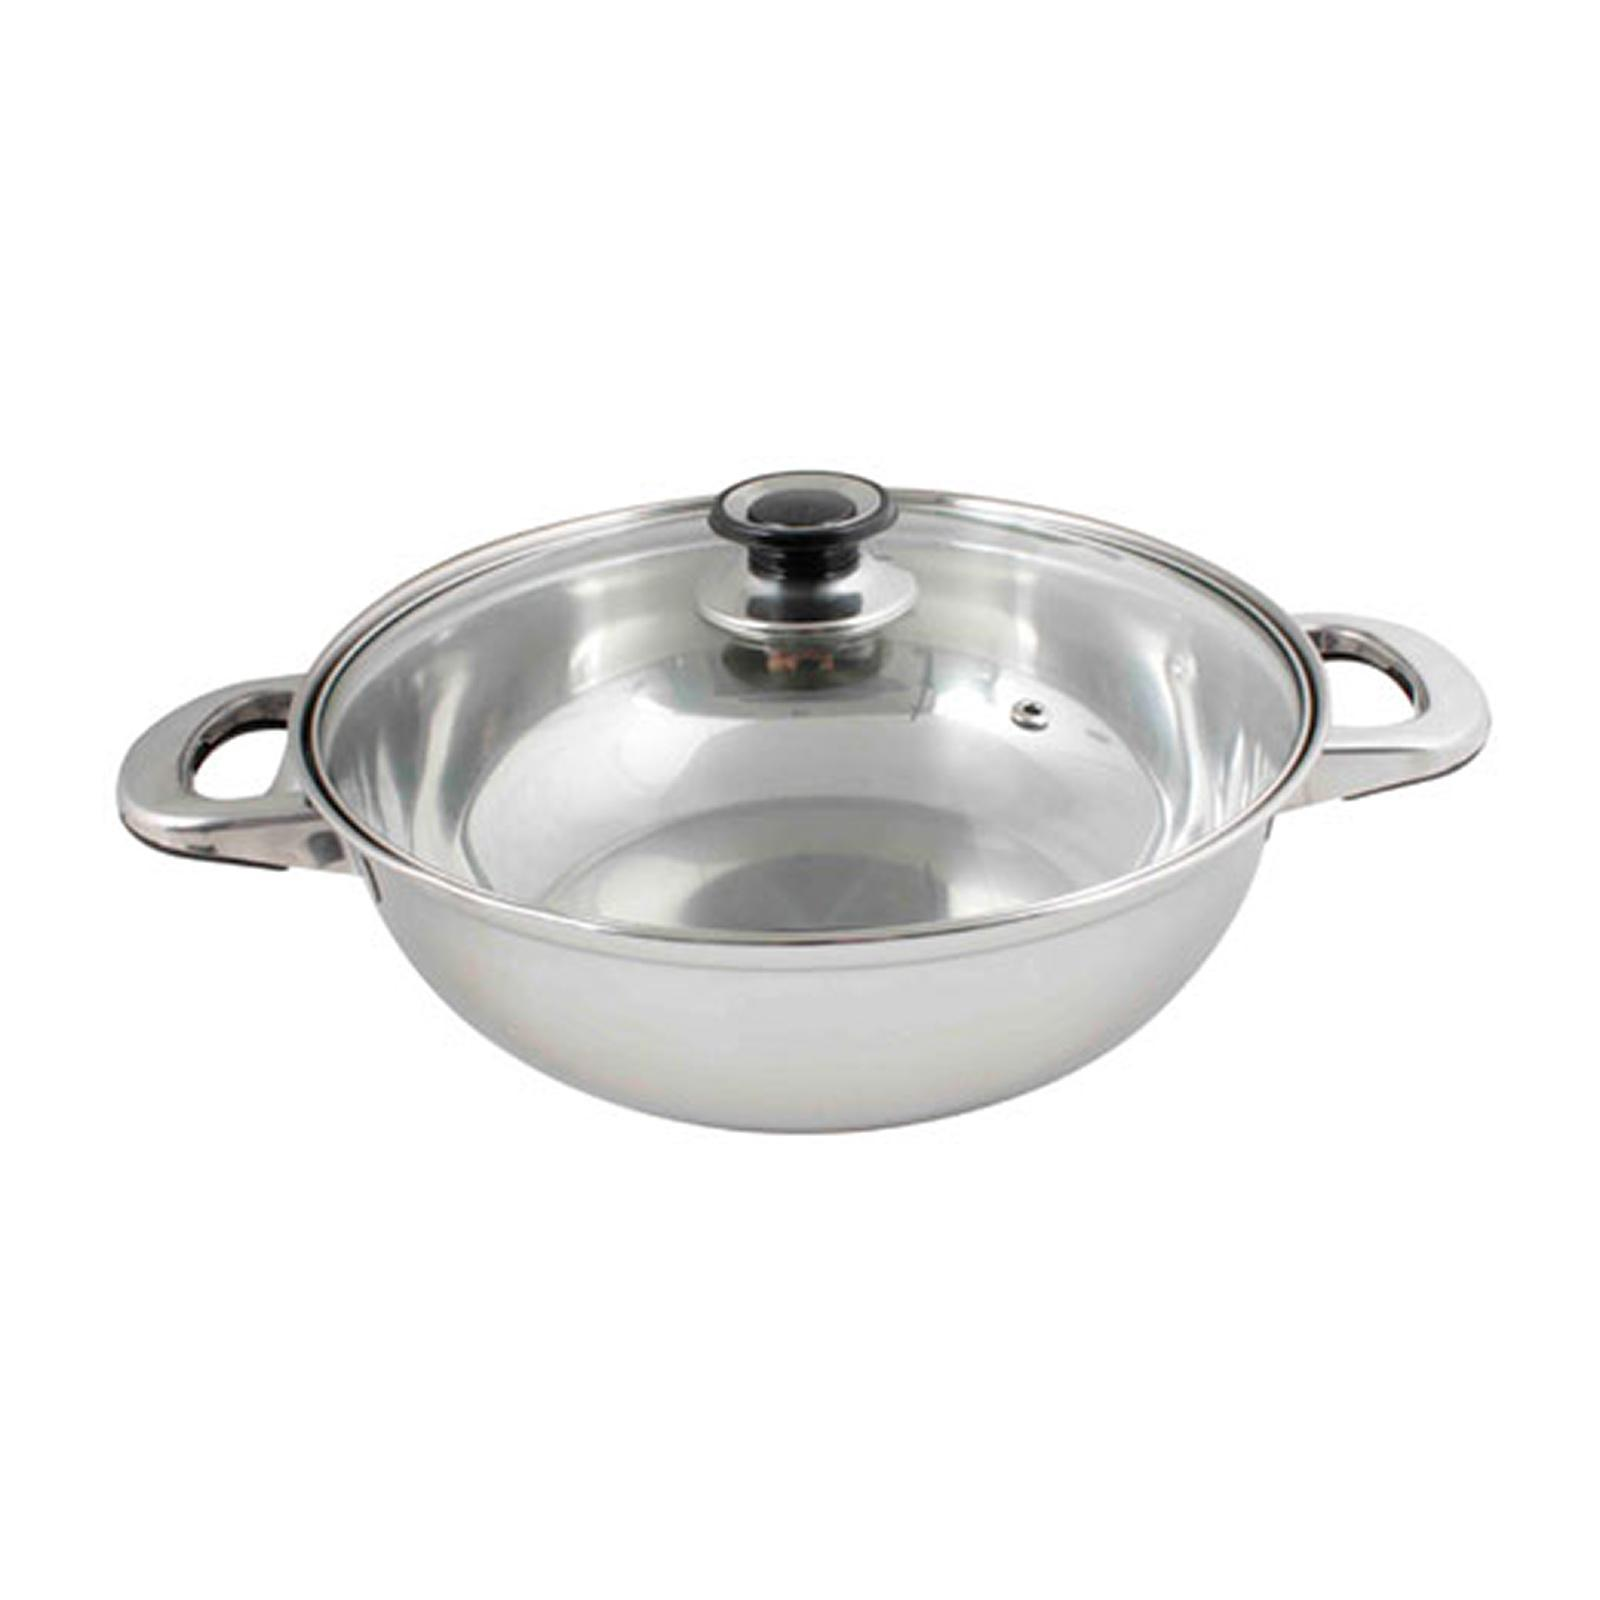 ToTT Induction Shabu Shabu Hot Pot With Glass Lid 28Cm - By ToTT